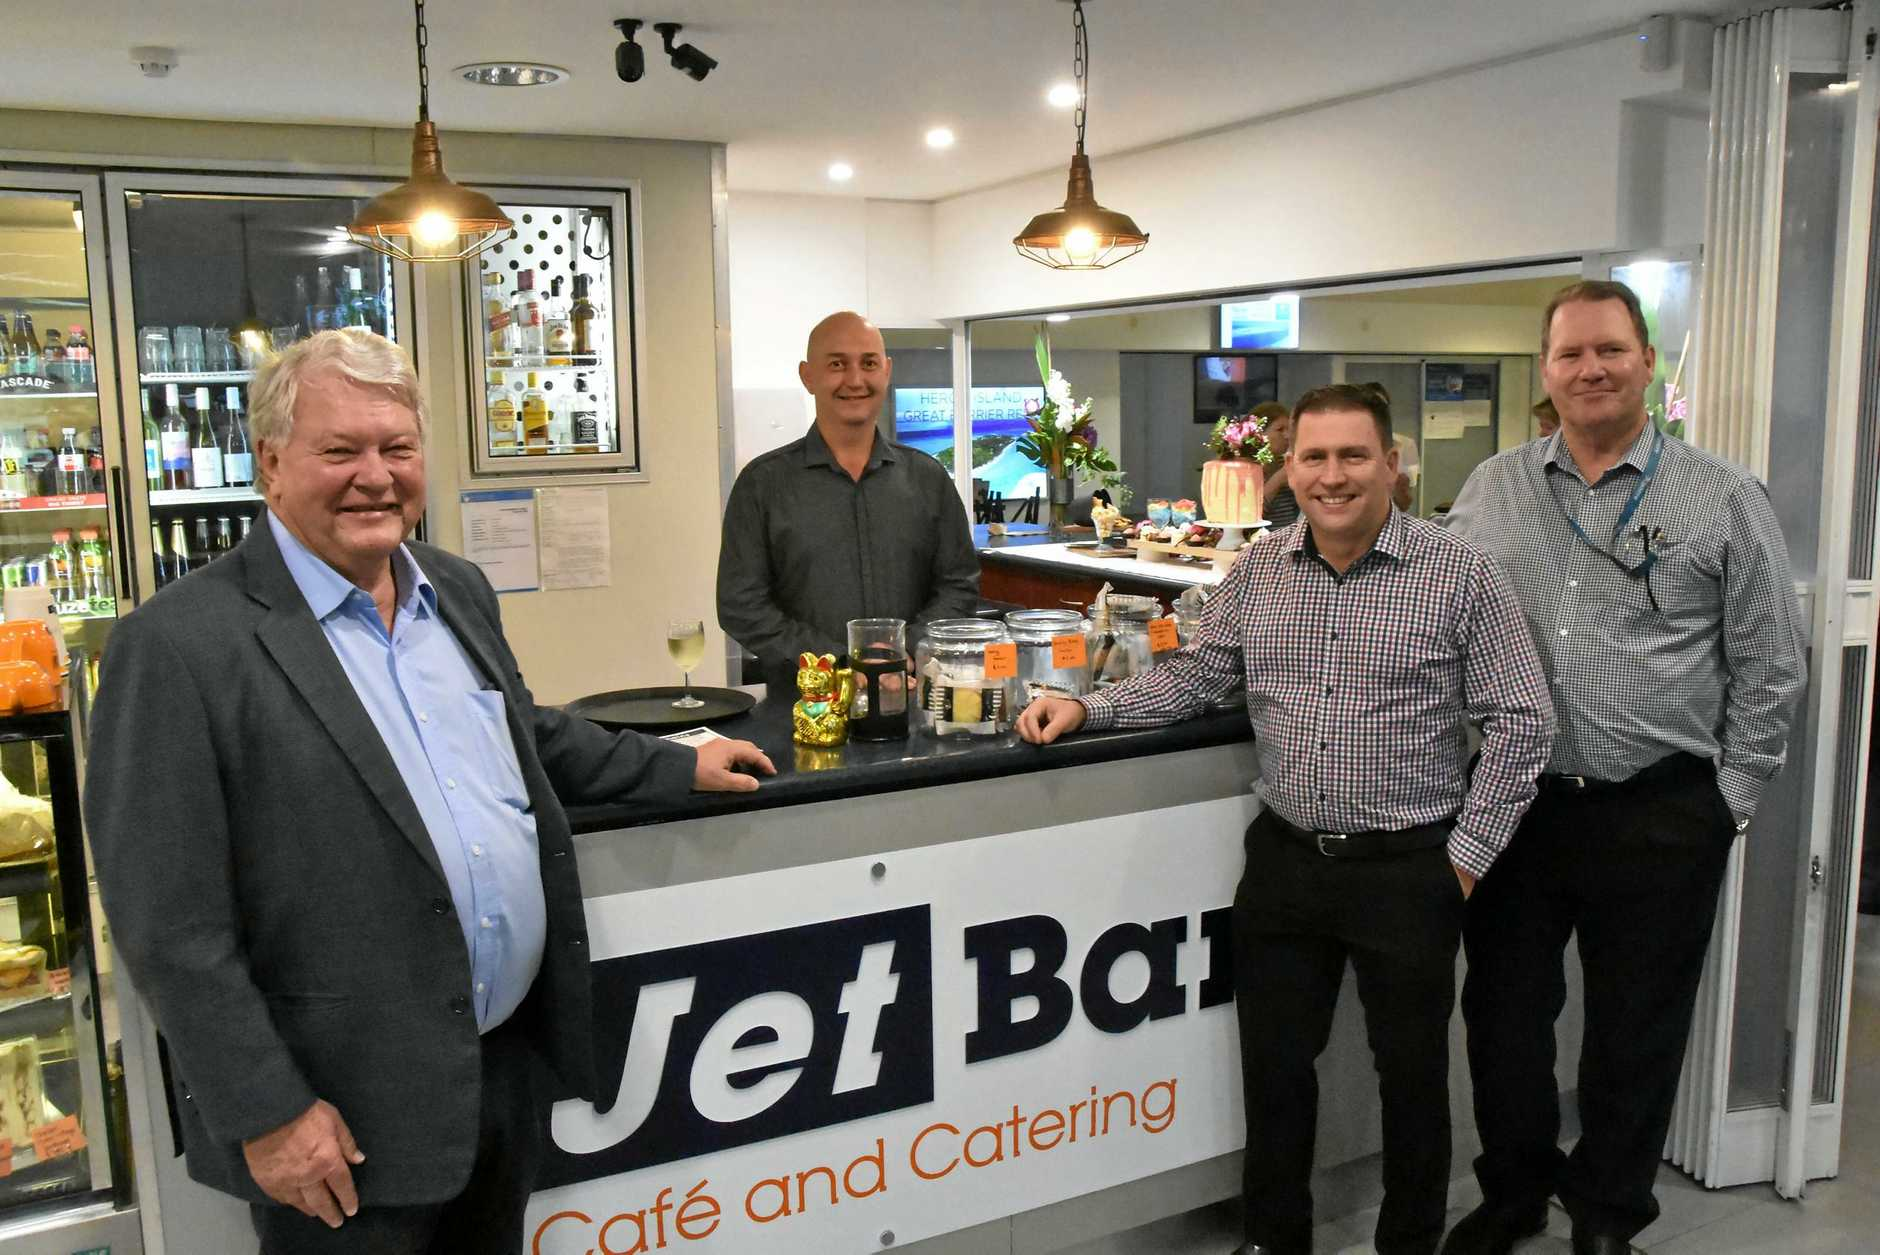 Member for Flynn Ken O'Dowd, The Jet Bar owner Shaun Cooper, Gladstone Region mayor Matt Burnett and Gladstone Airport Corporation CEO Colin Fort at the official opening of The Jet Bar on June 11.